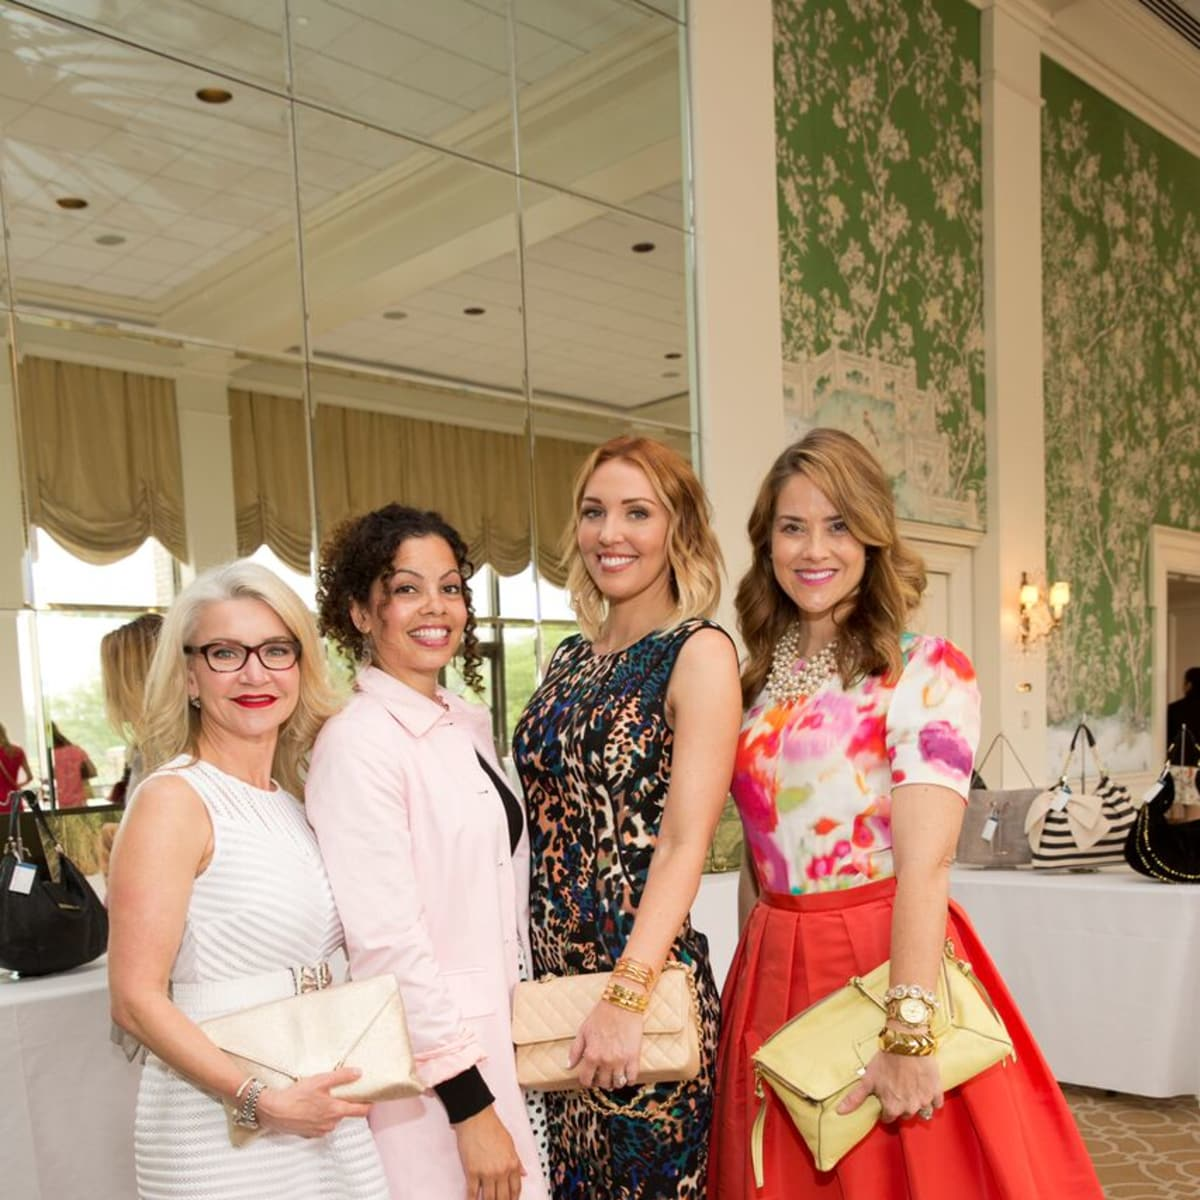 Heroes and Handbags 4/16, Maureen Semple-Hirsch, Maureen Holcombe, Natalie King, Erin Lopez